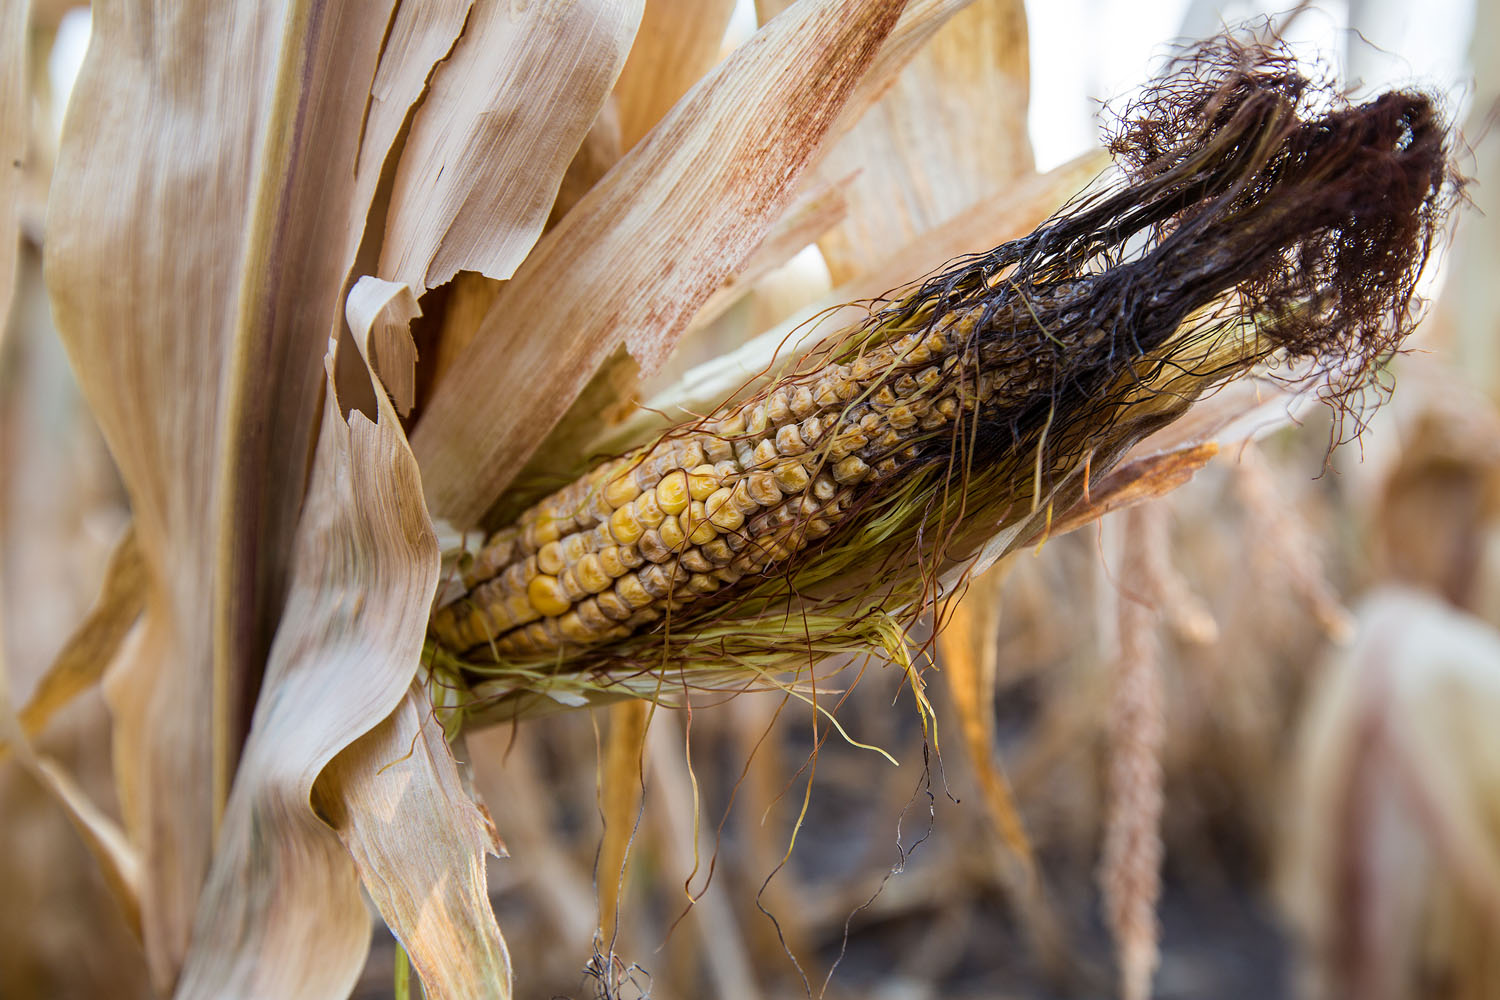 Drought-shriveled corn